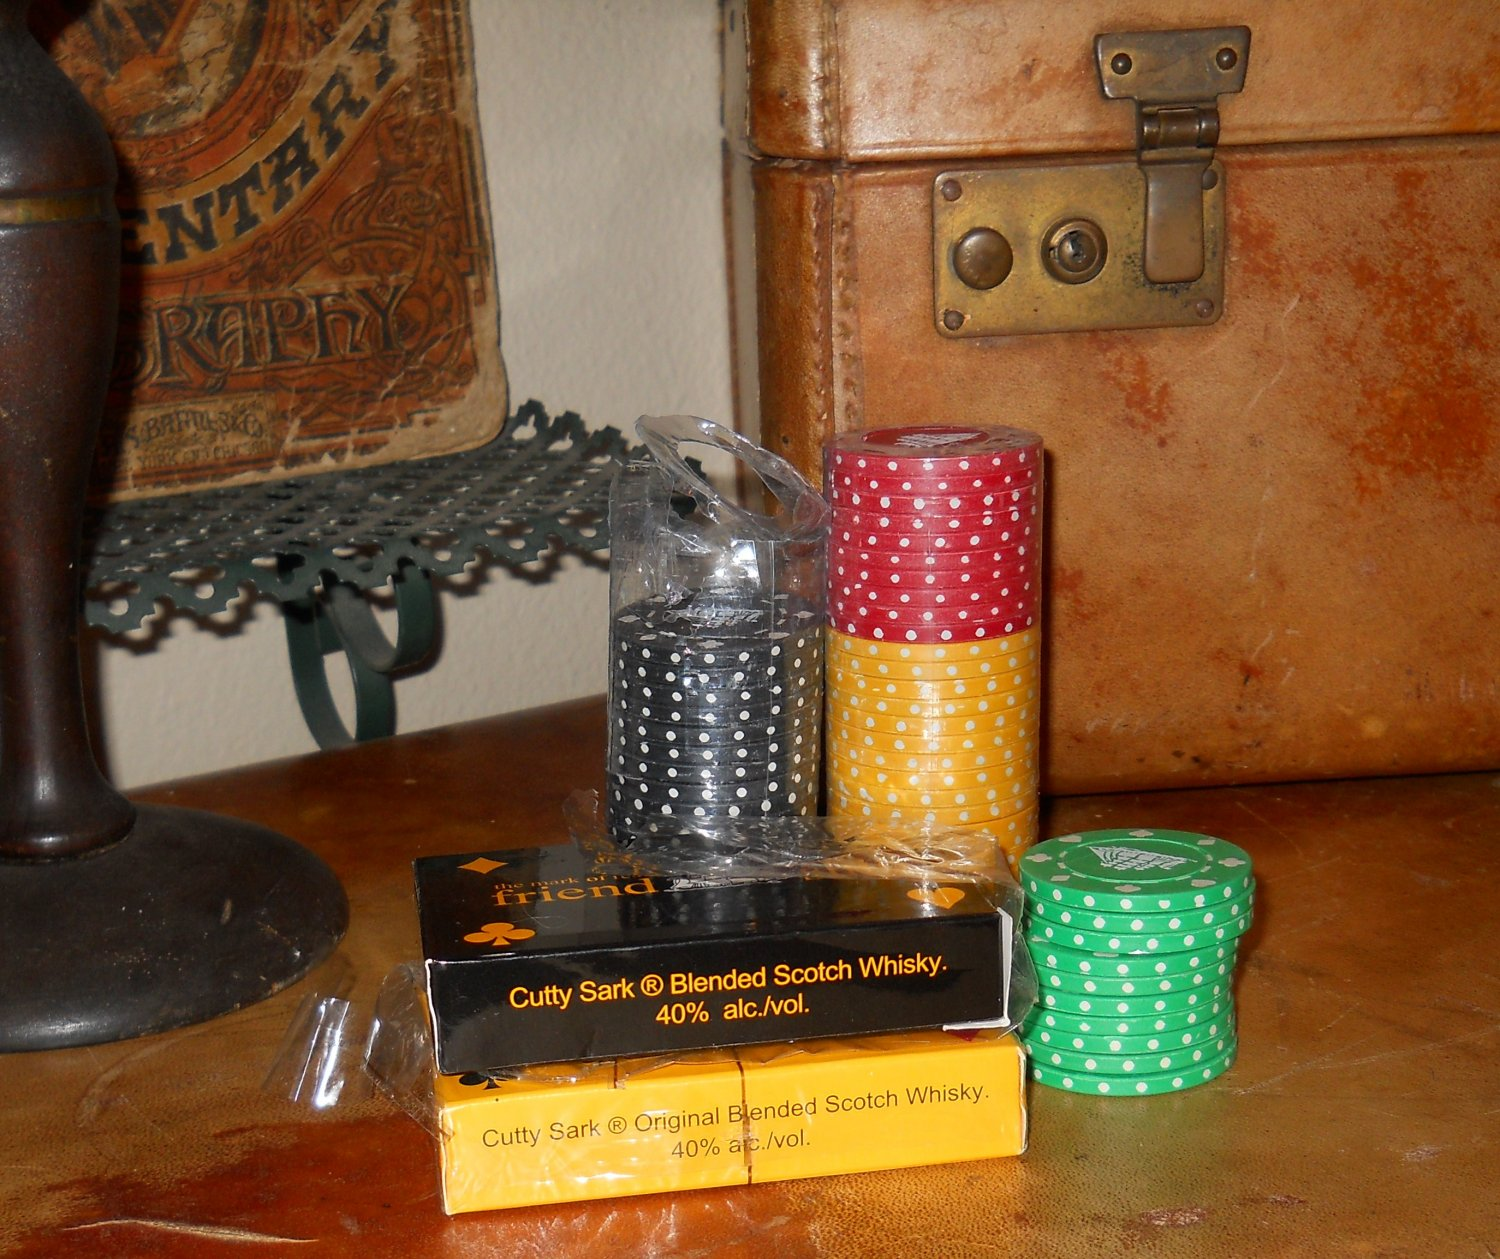 CUTTY SARK FRIENDSHIP POKER SET PROMO - 2 PACK CARDS AND 2 STACKS OF CHIPS